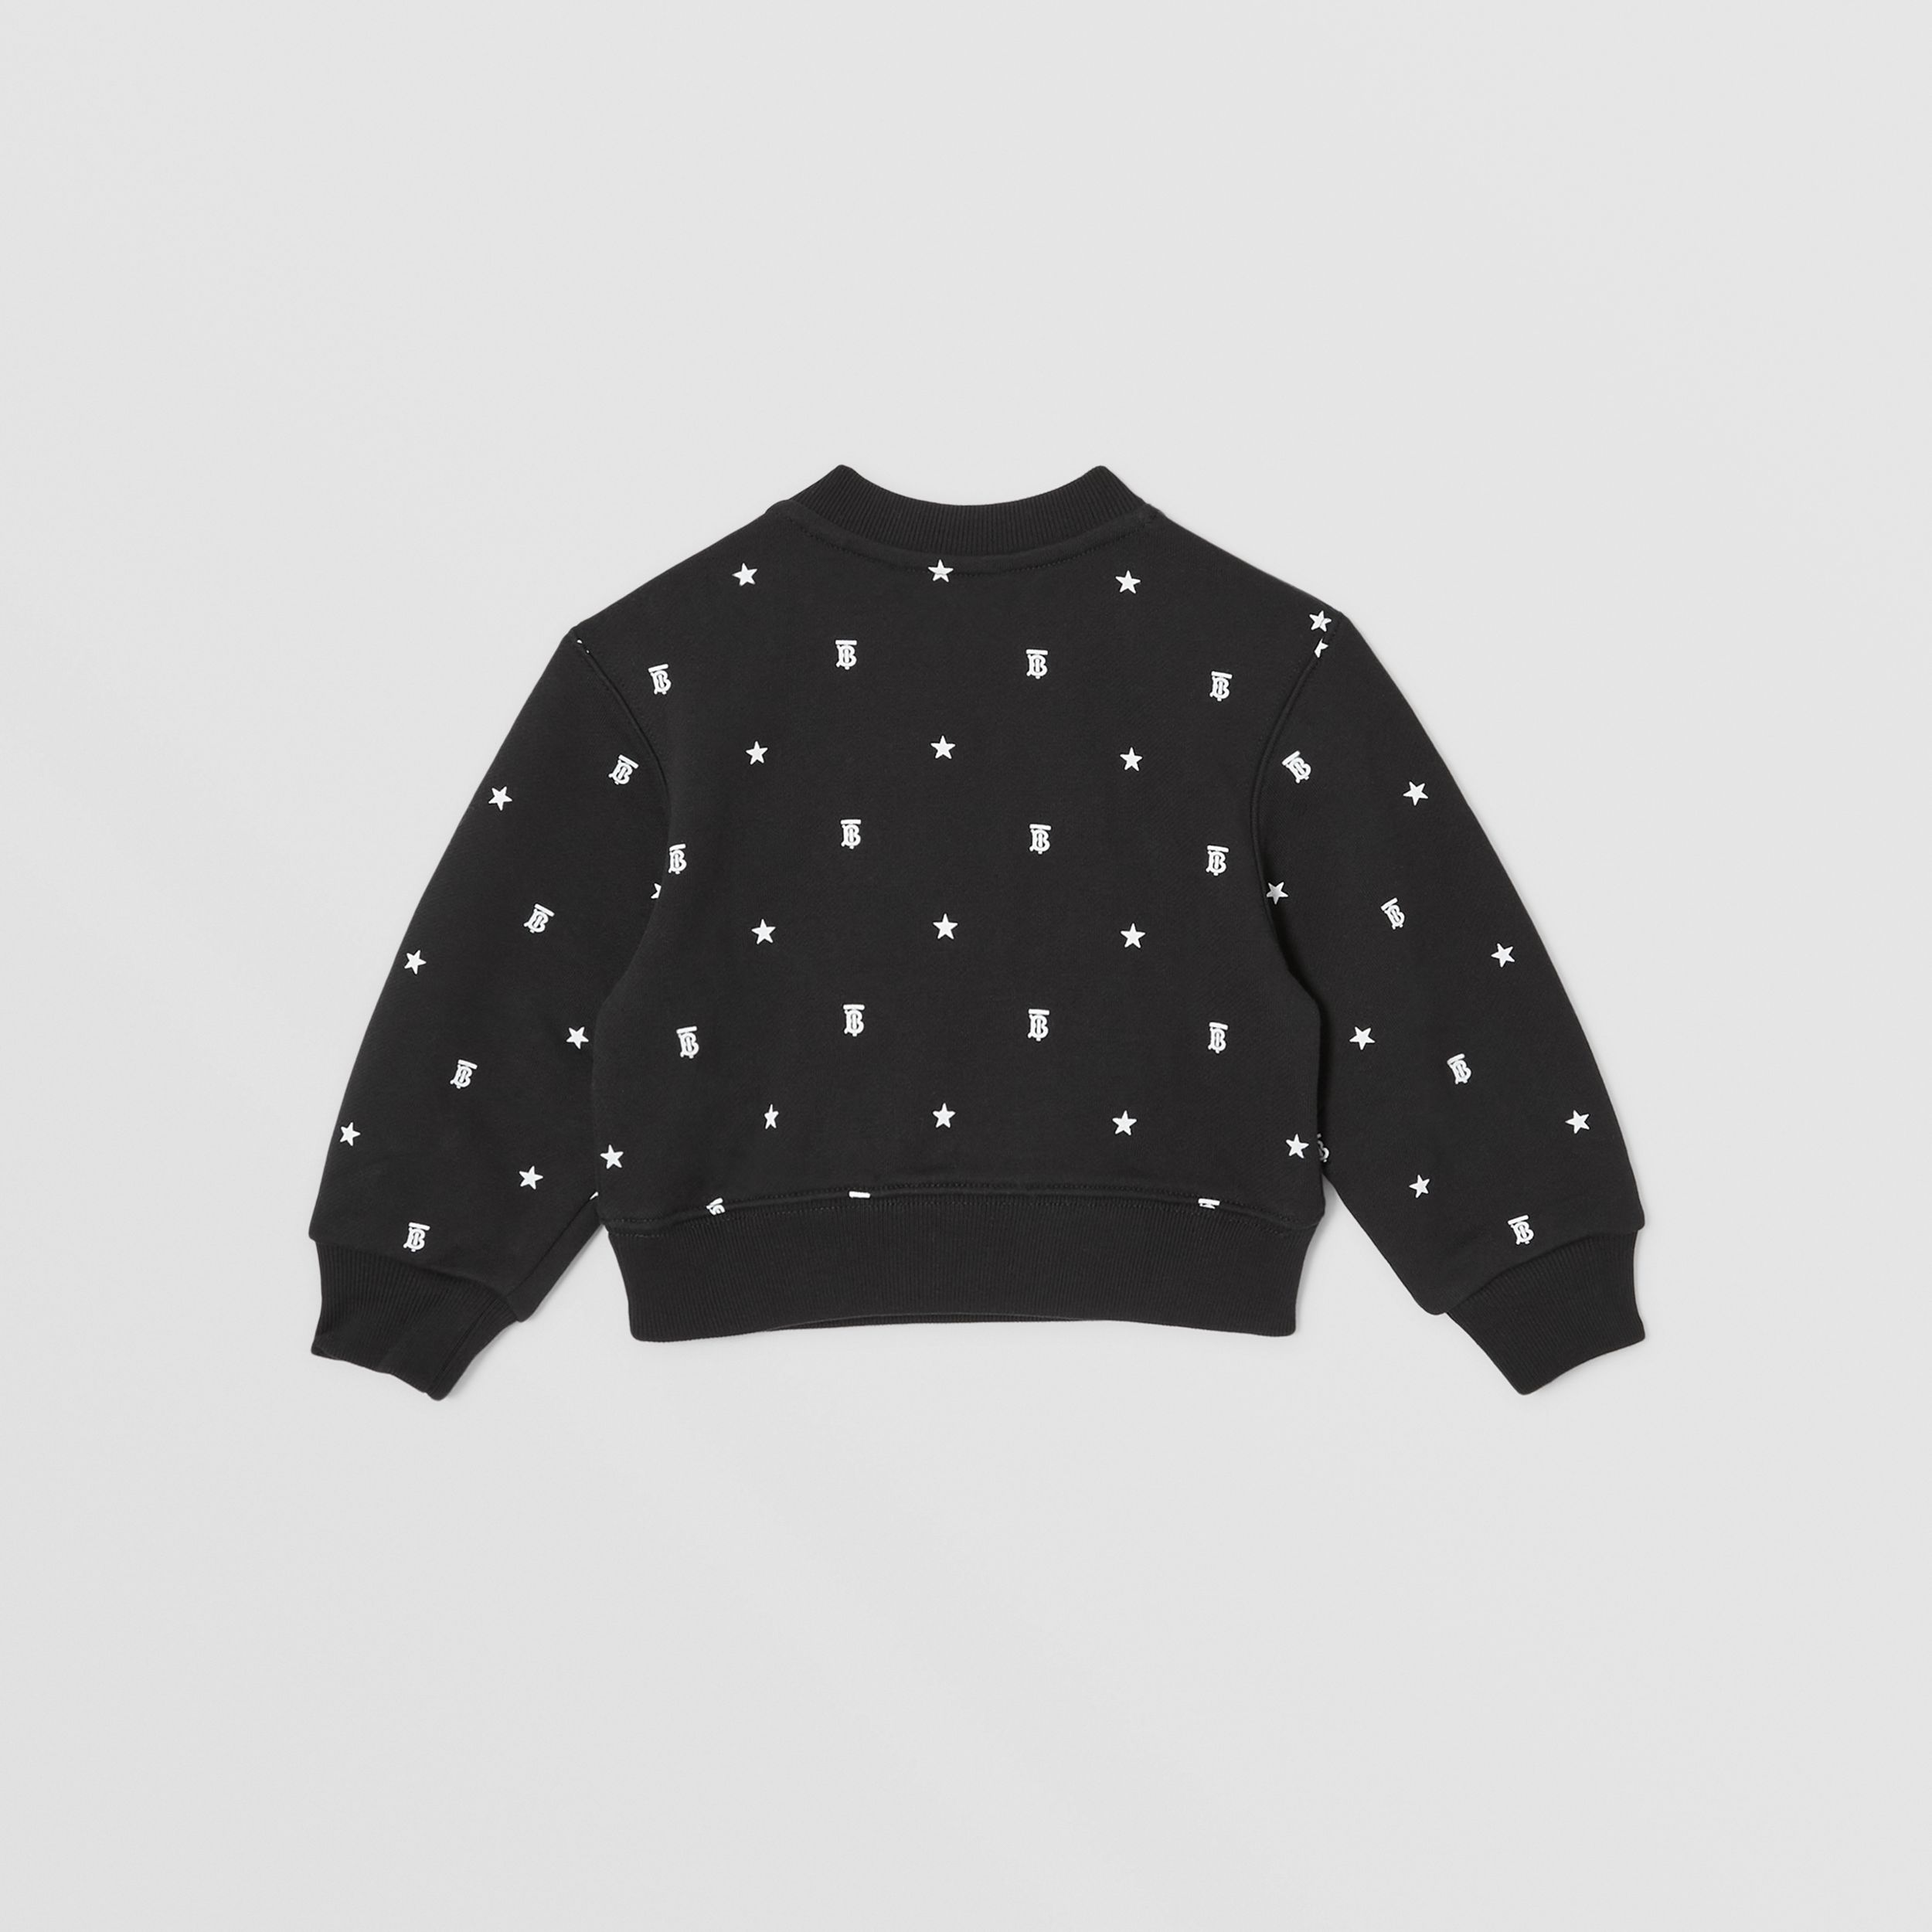 Star and Monogram Motif Cotton Sweatshirt in Black - Children | Burberry - 4